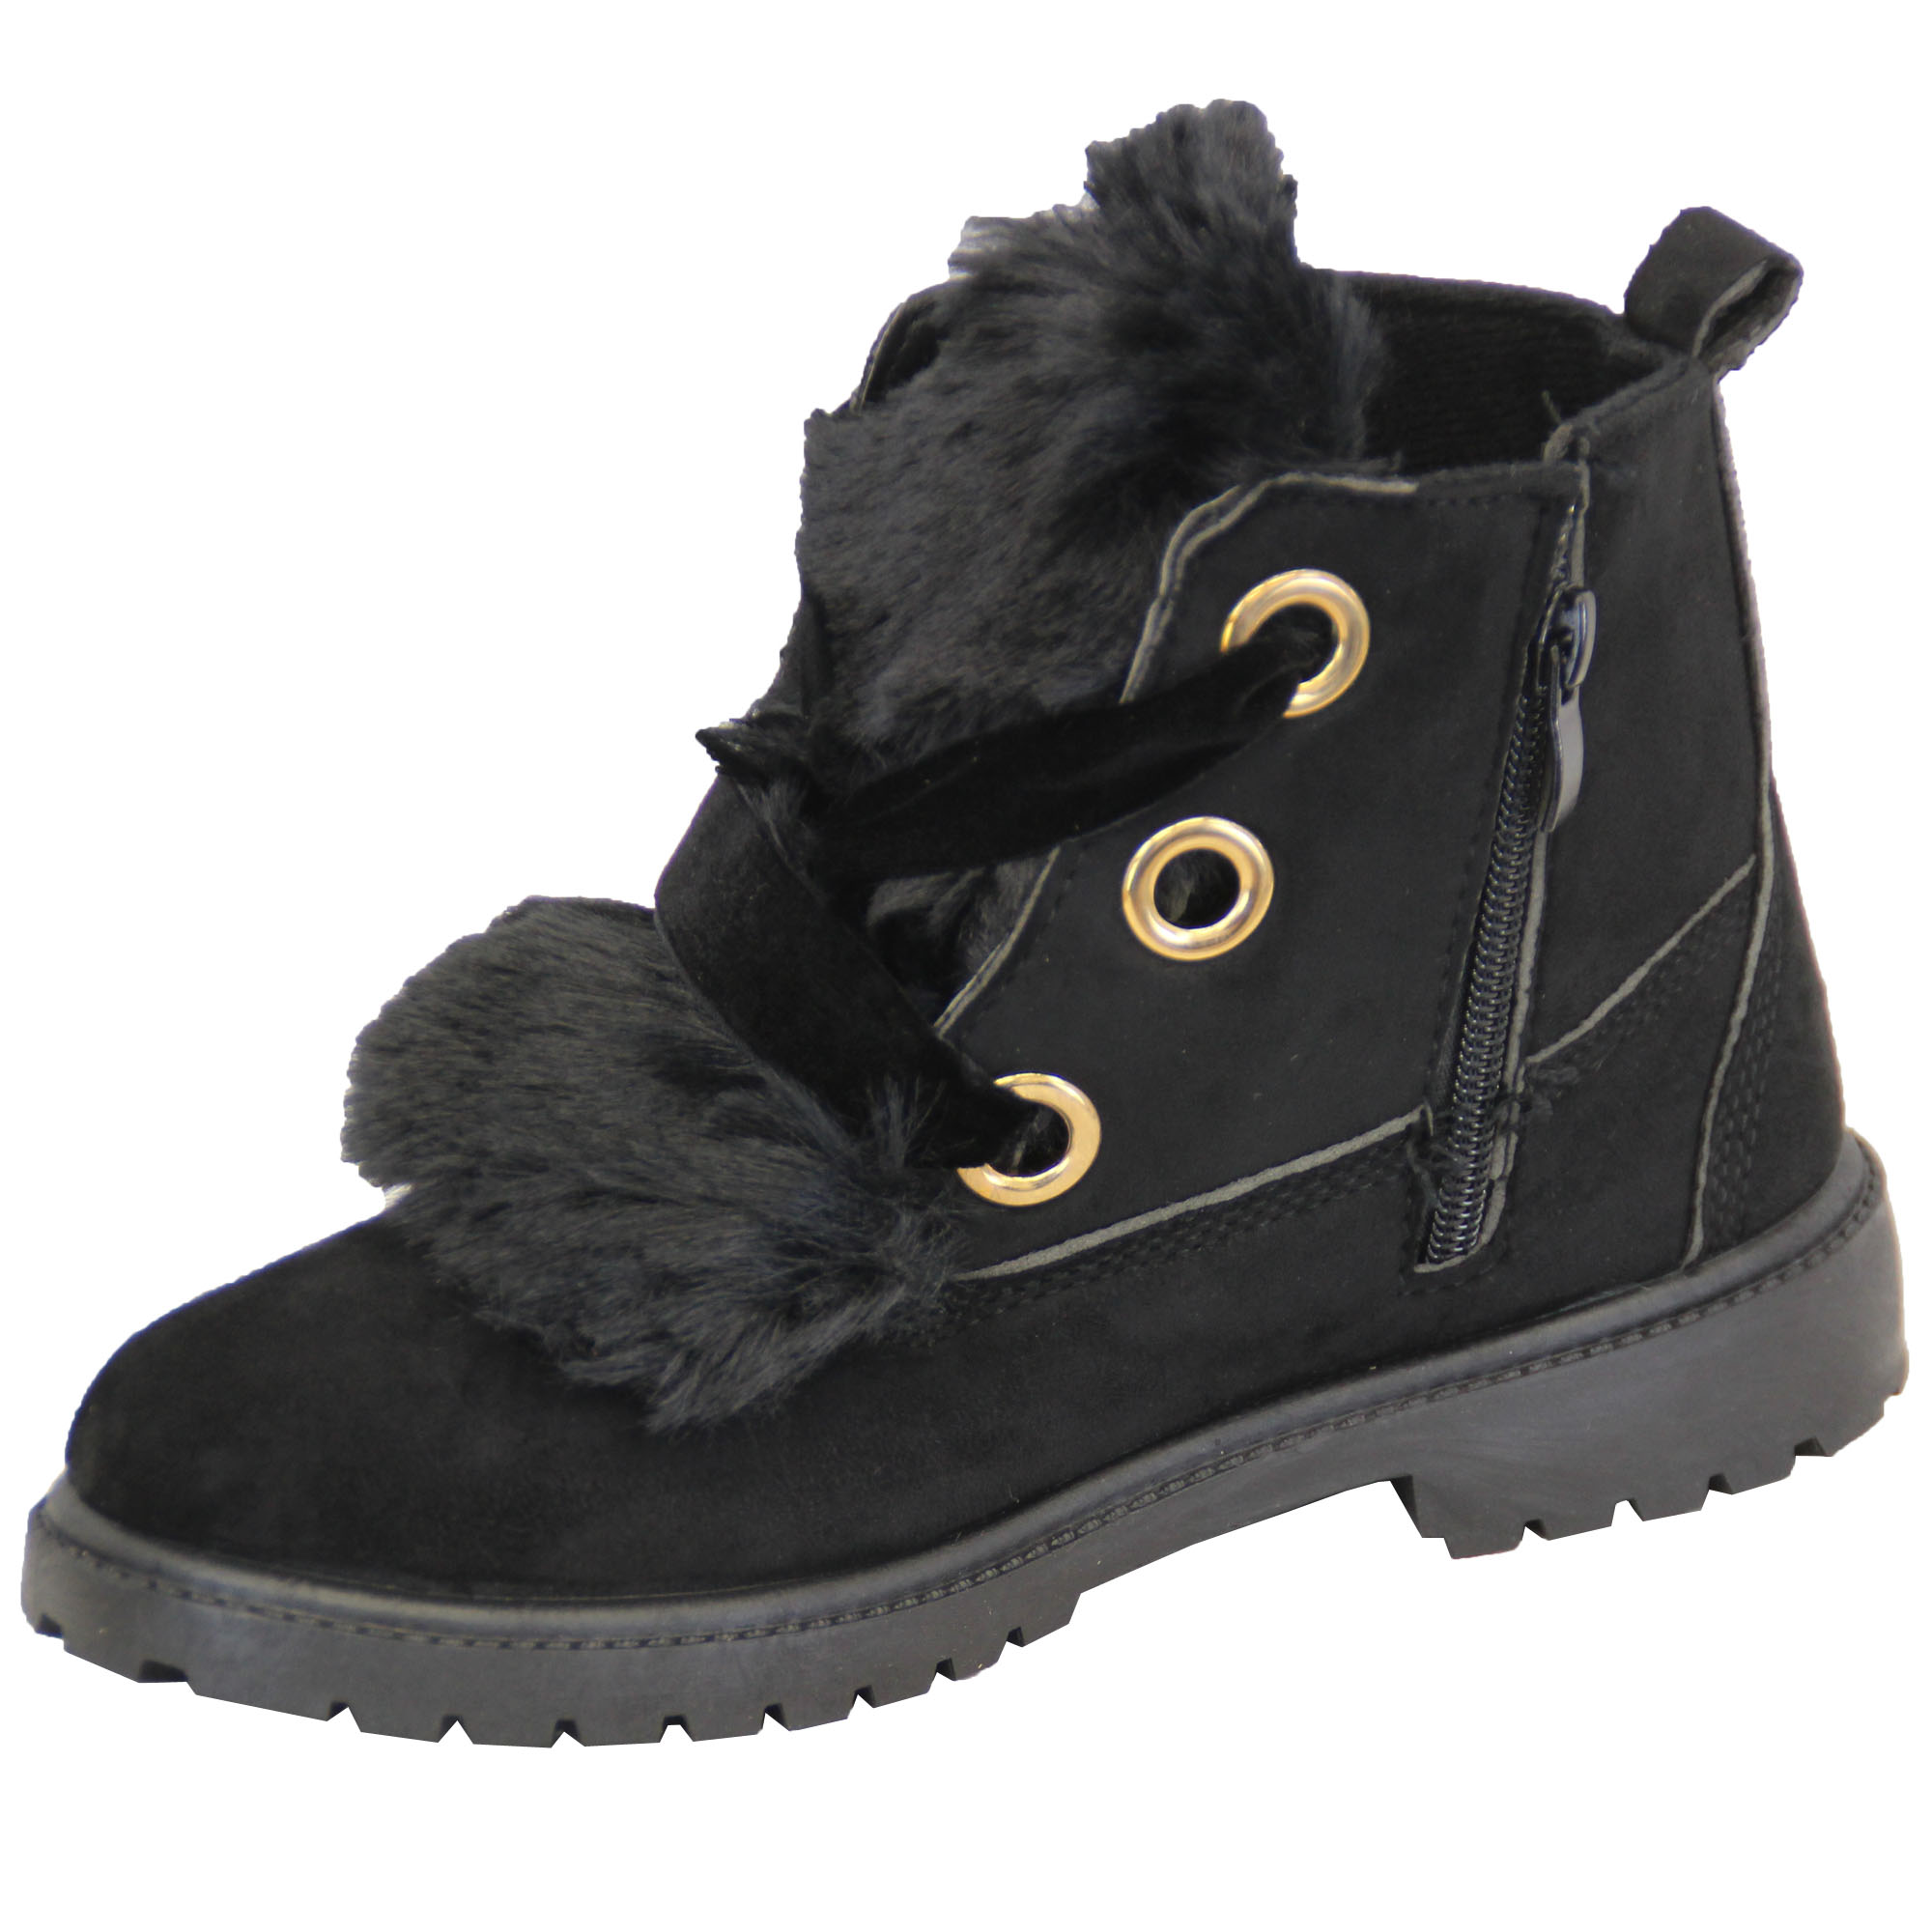 Girls-Suede-Look-Boots-Toddlers-Fluffy-Fur-Low-Heel-Lace-Up-Ankle-Shoes-Winter